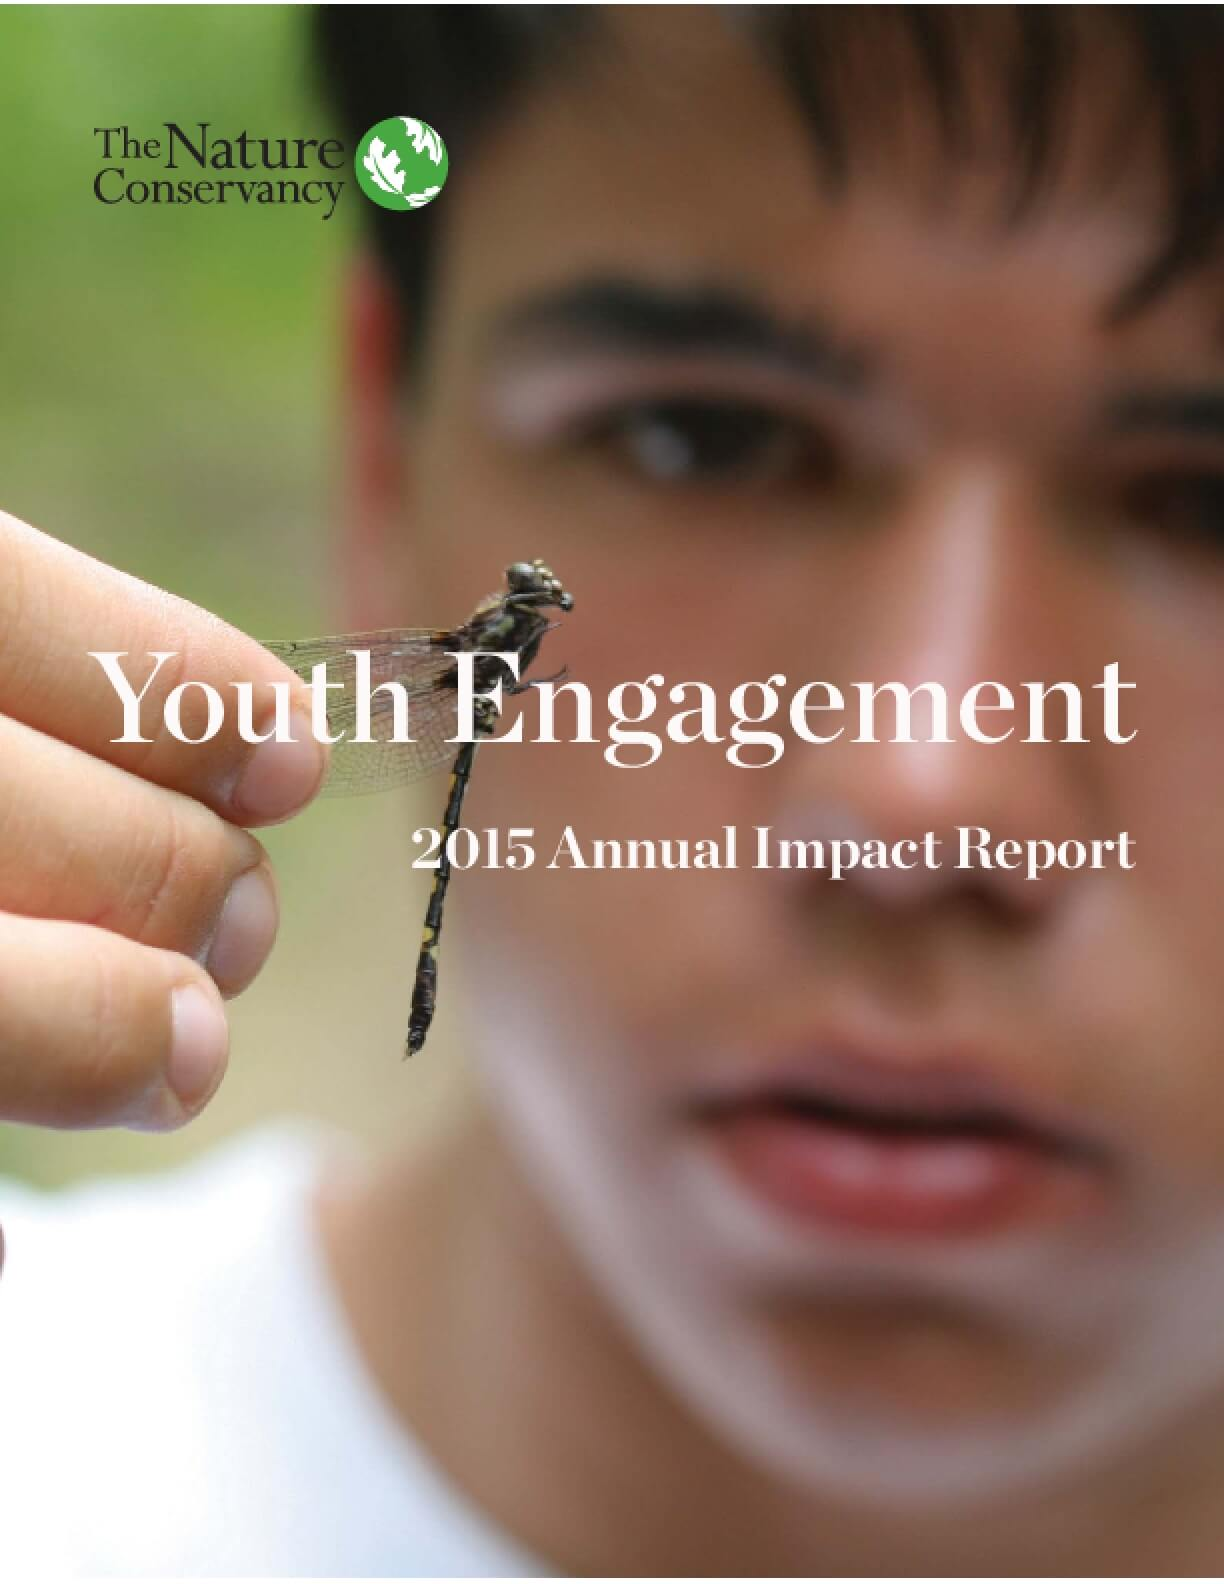 Youth Engagement 2015 Annual Impact Report